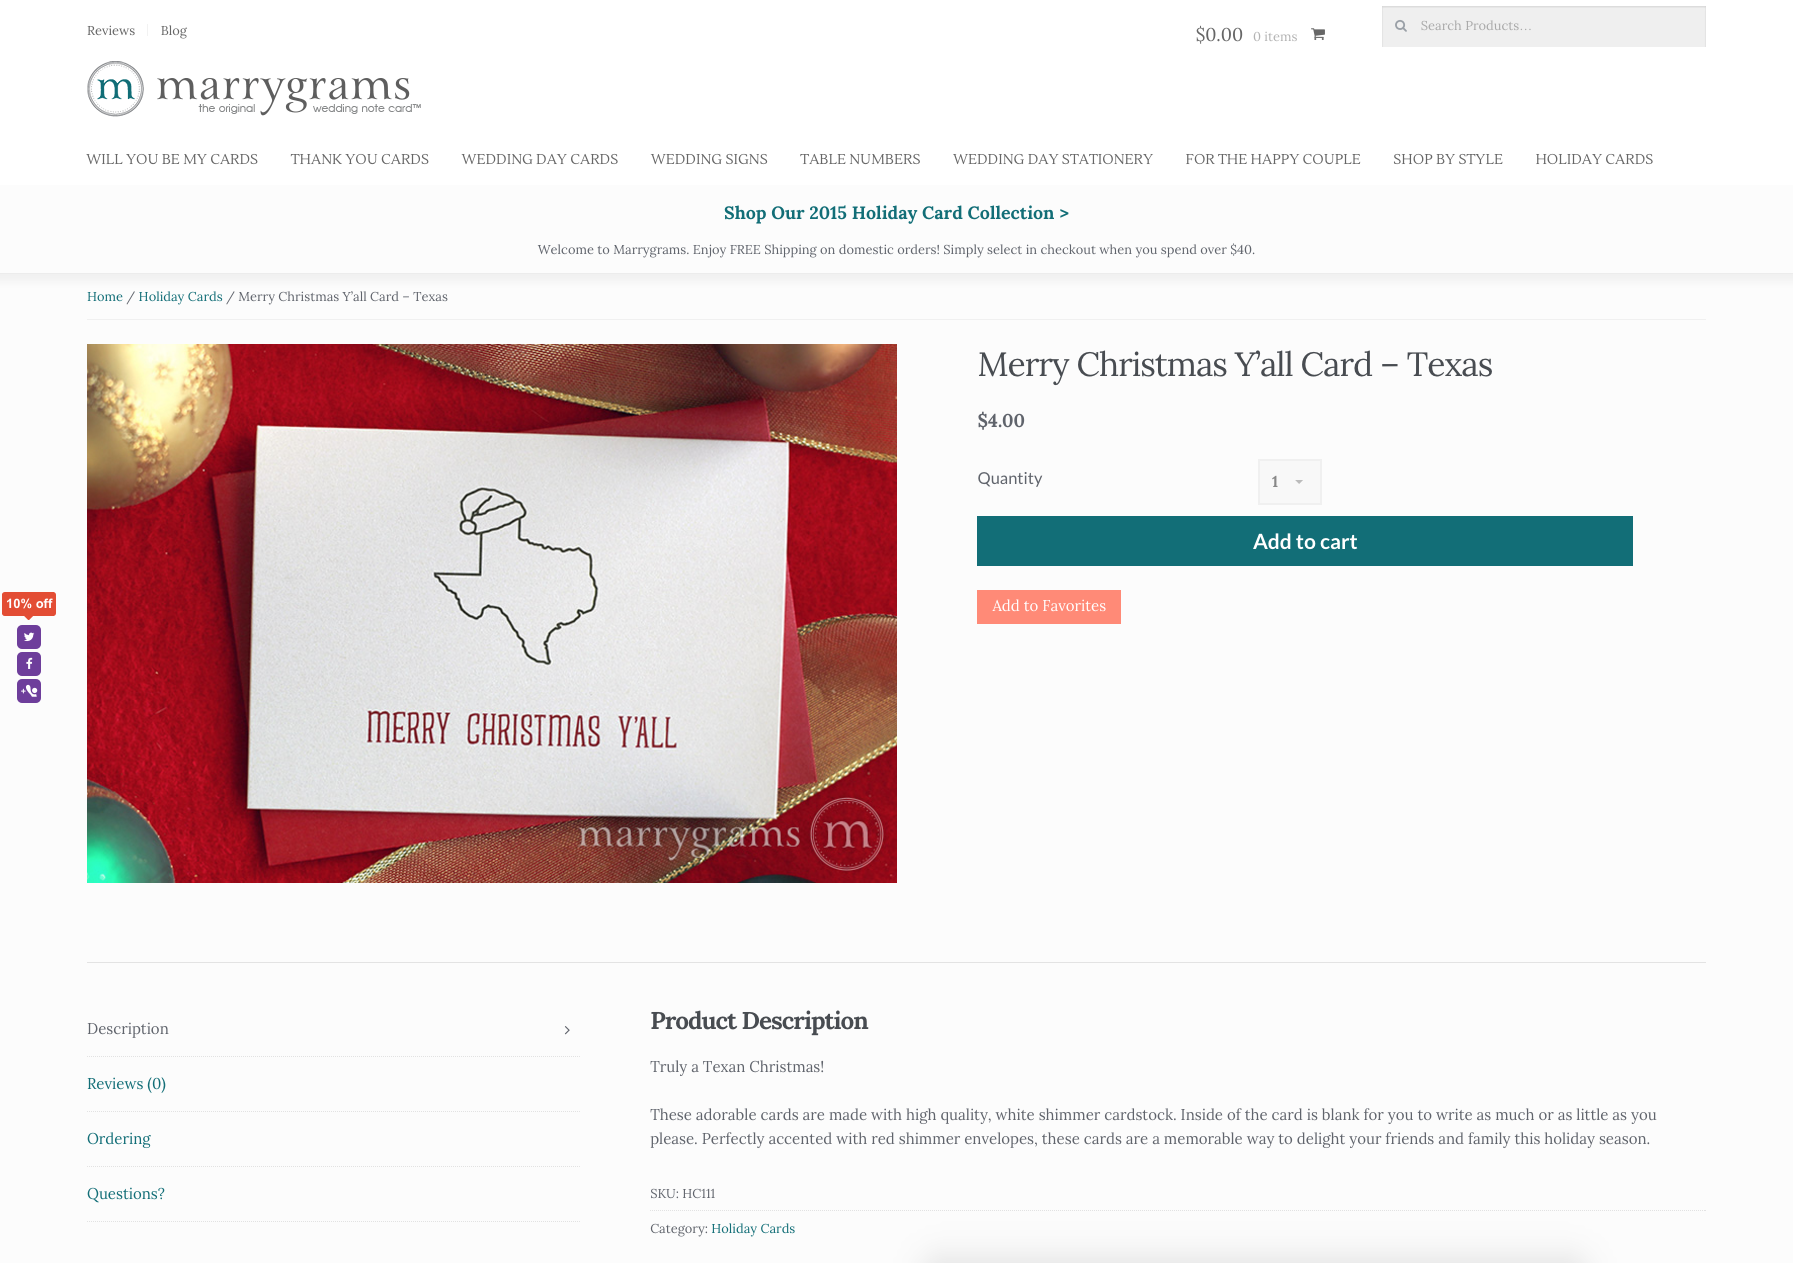 Marrygrams uses Storefront to make their shop delightful.